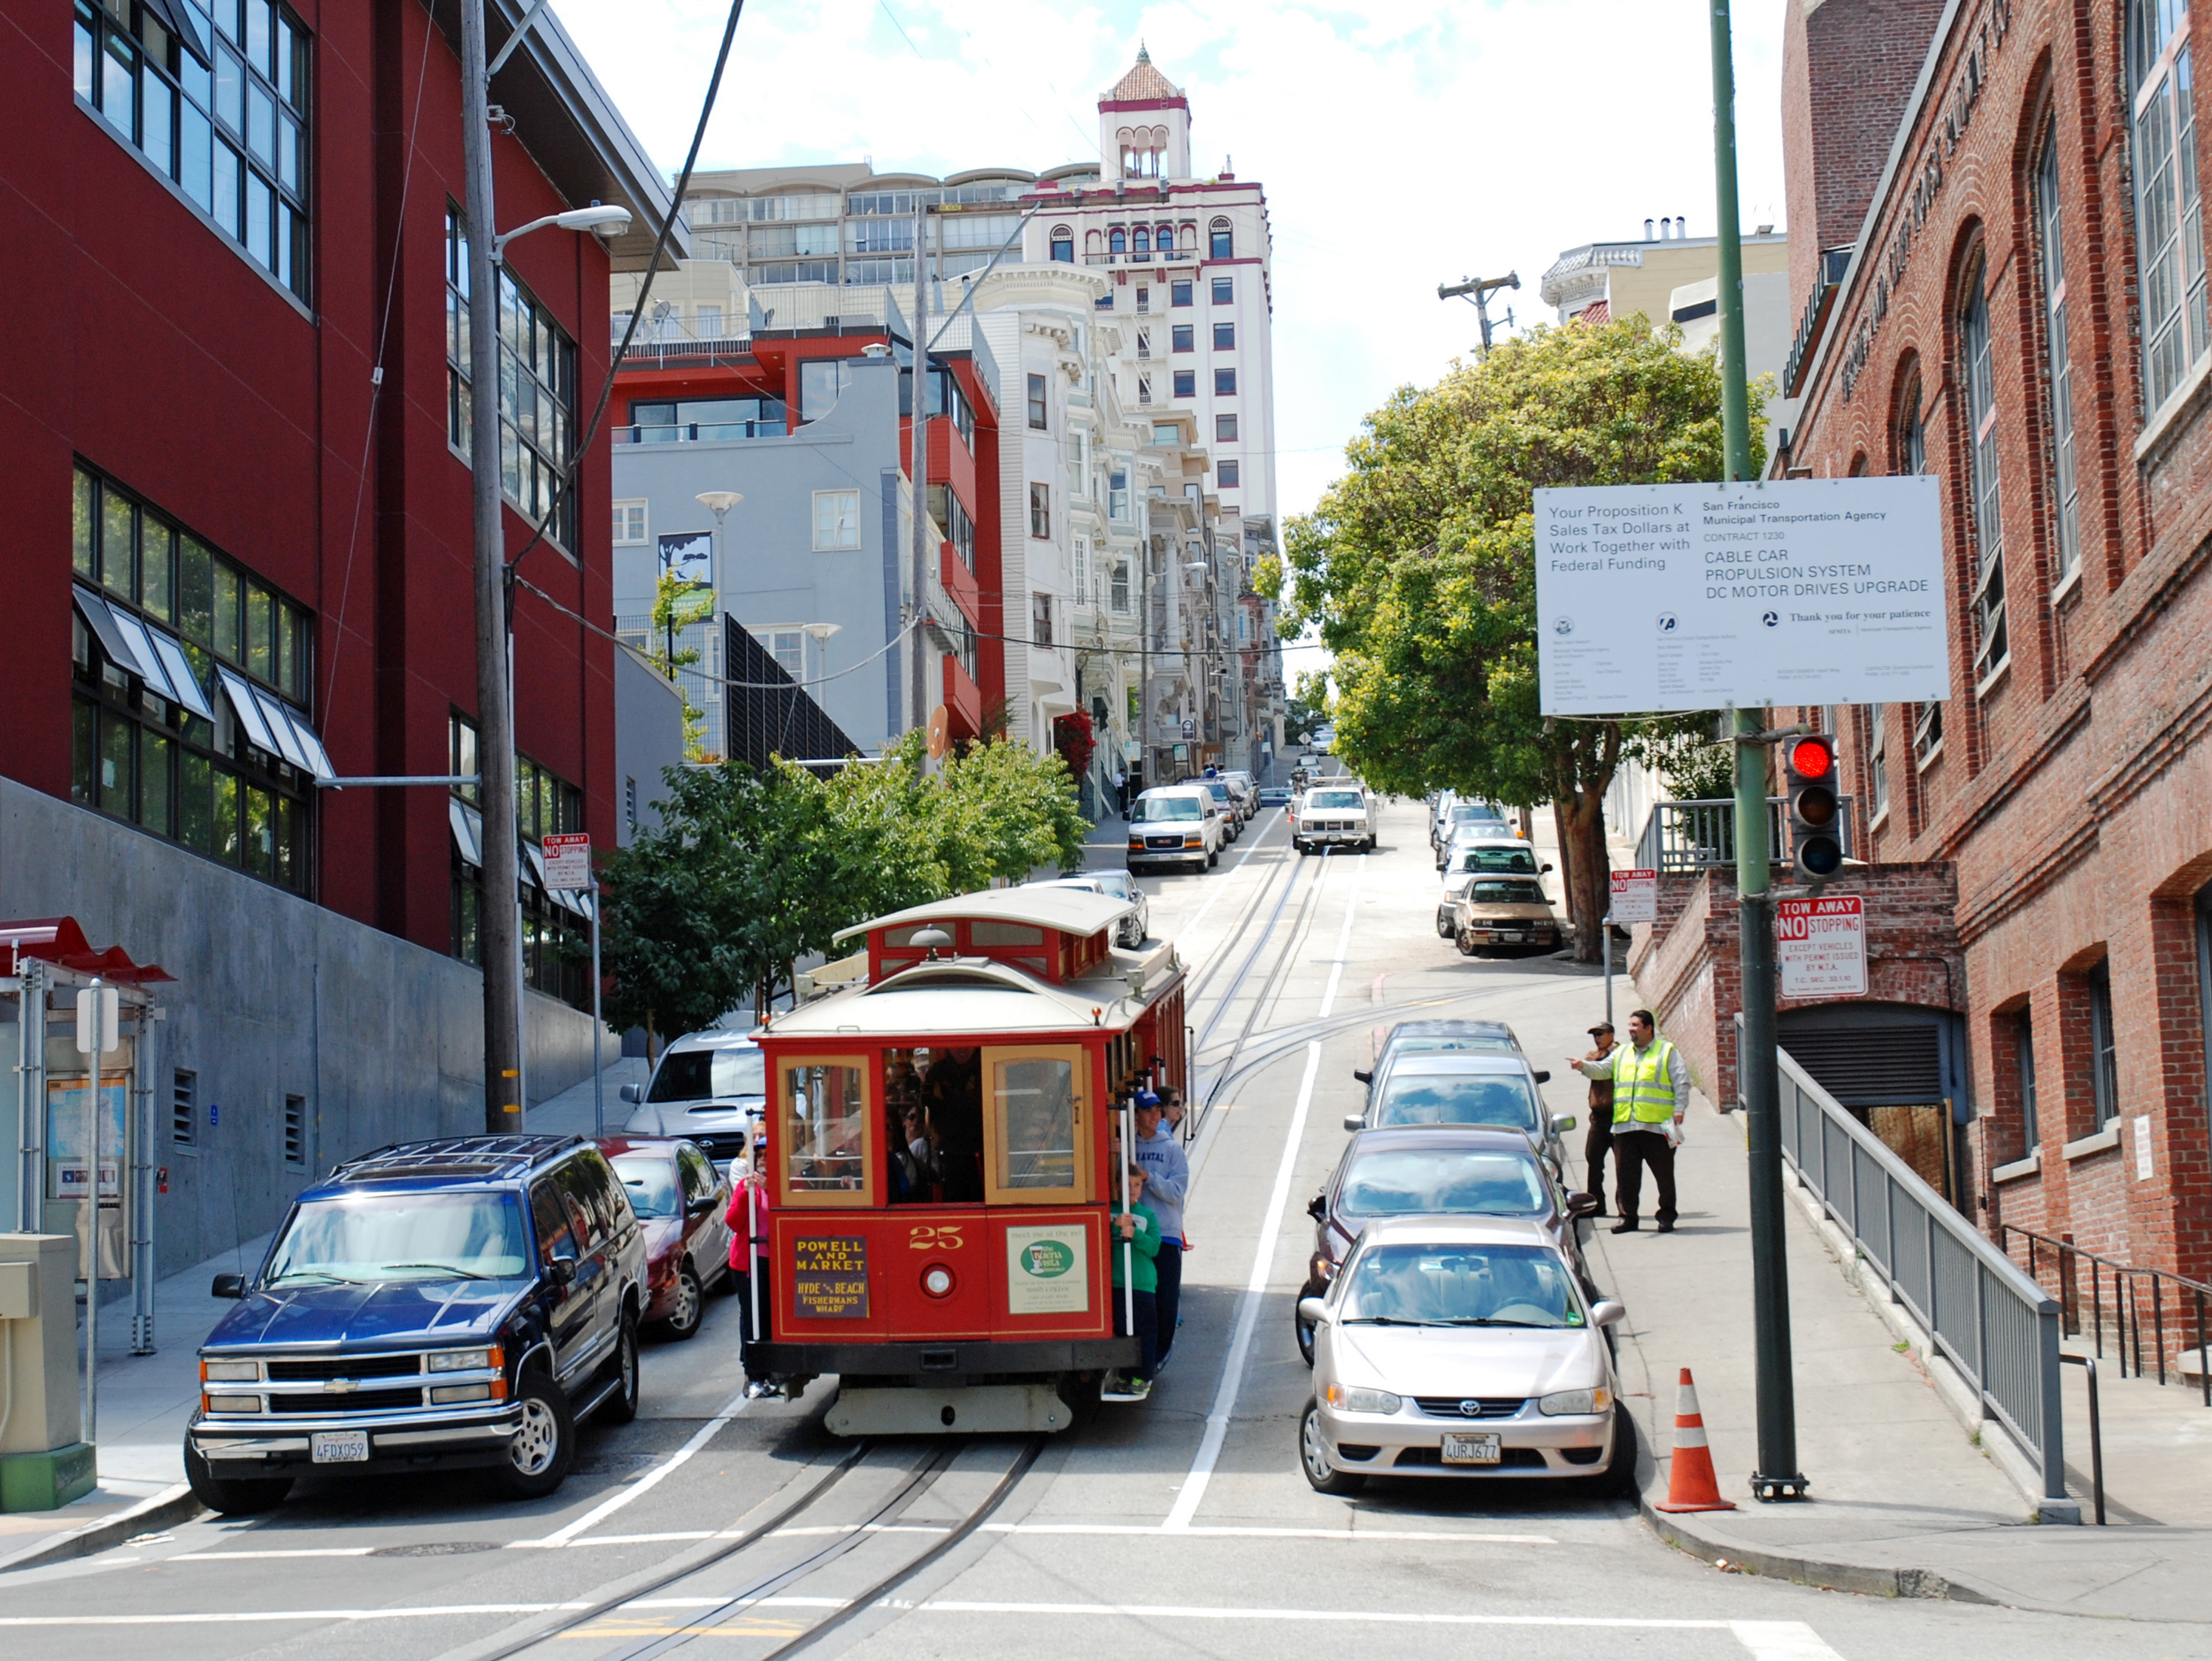 14 cable car 1 now.jpg